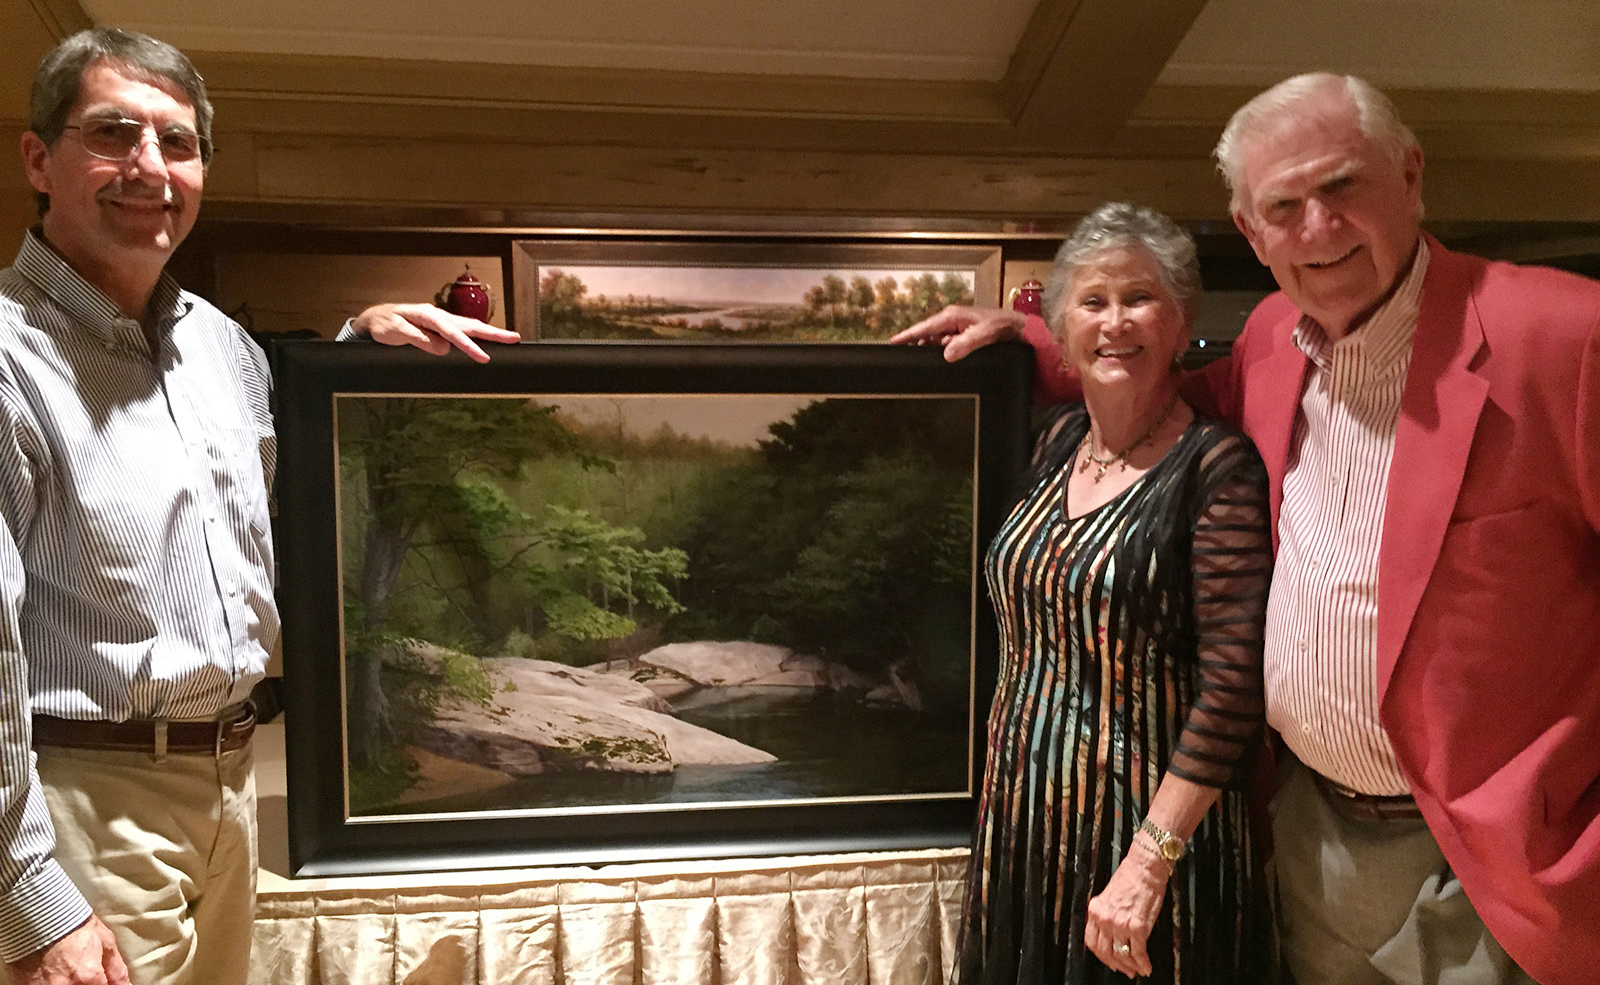 Jason showing his new painting River Bend with buyers Jim & Barbara Whitton